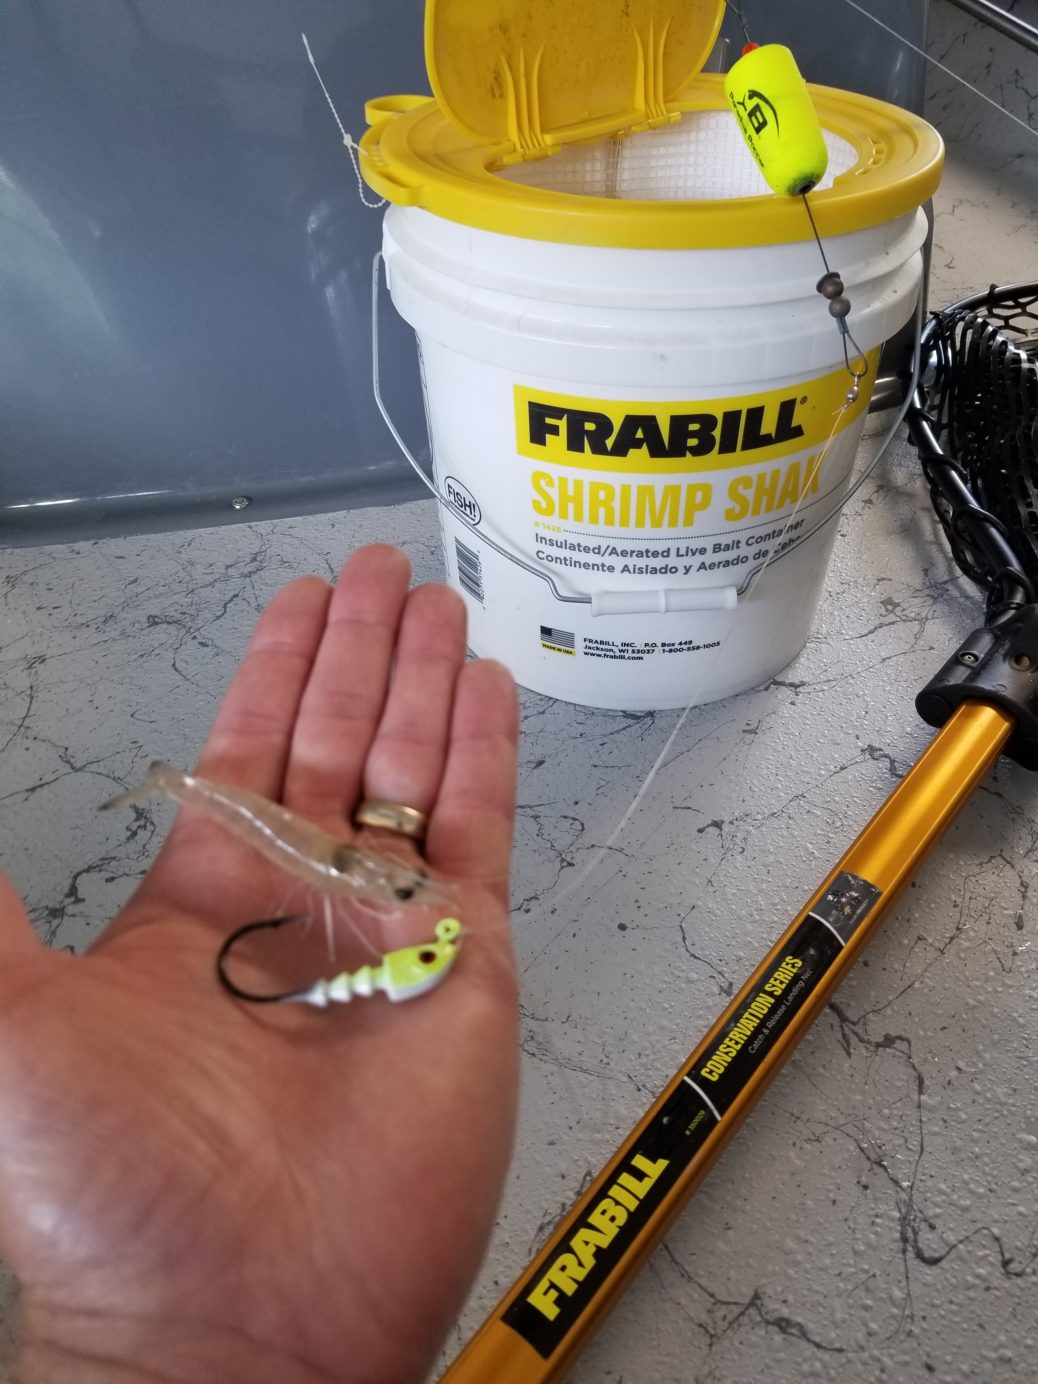 Keep brown shrimp lively in the Frabill Shrimp Shak for a successful fishing trip.